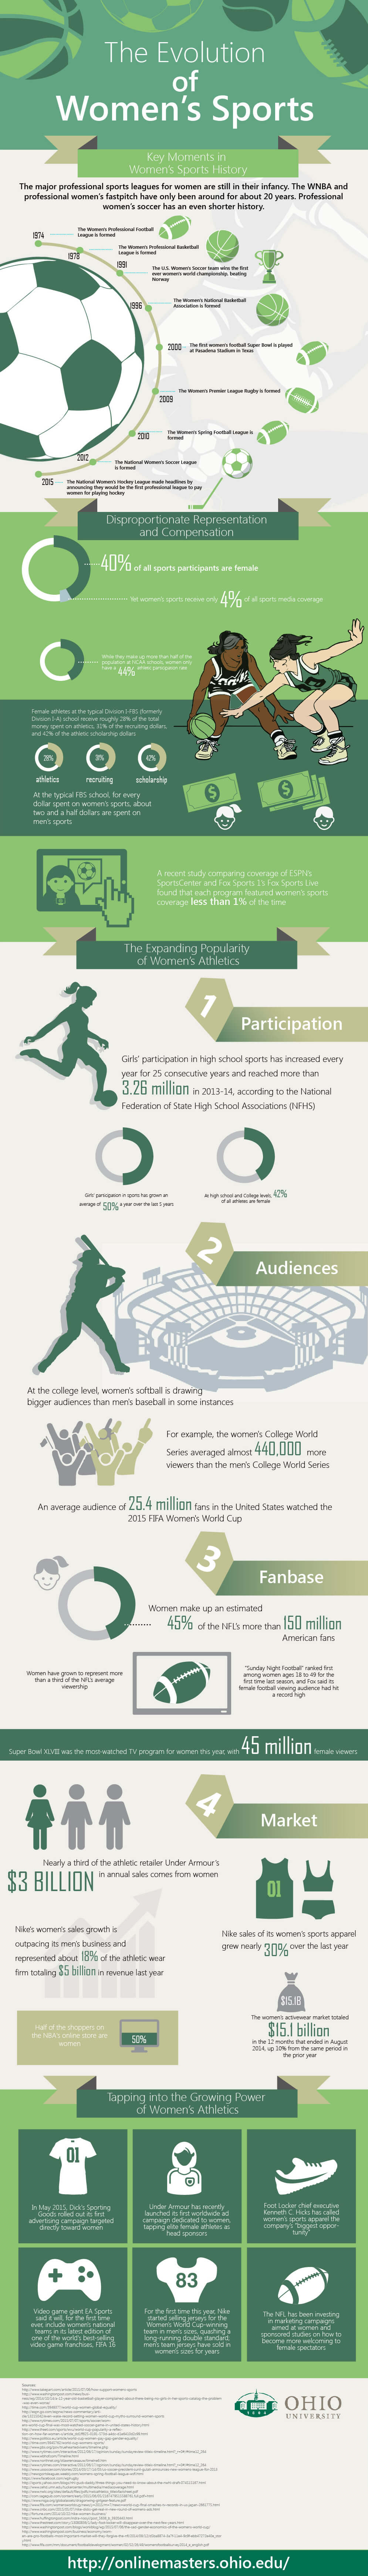 The Evolution of Women's Sports infographic